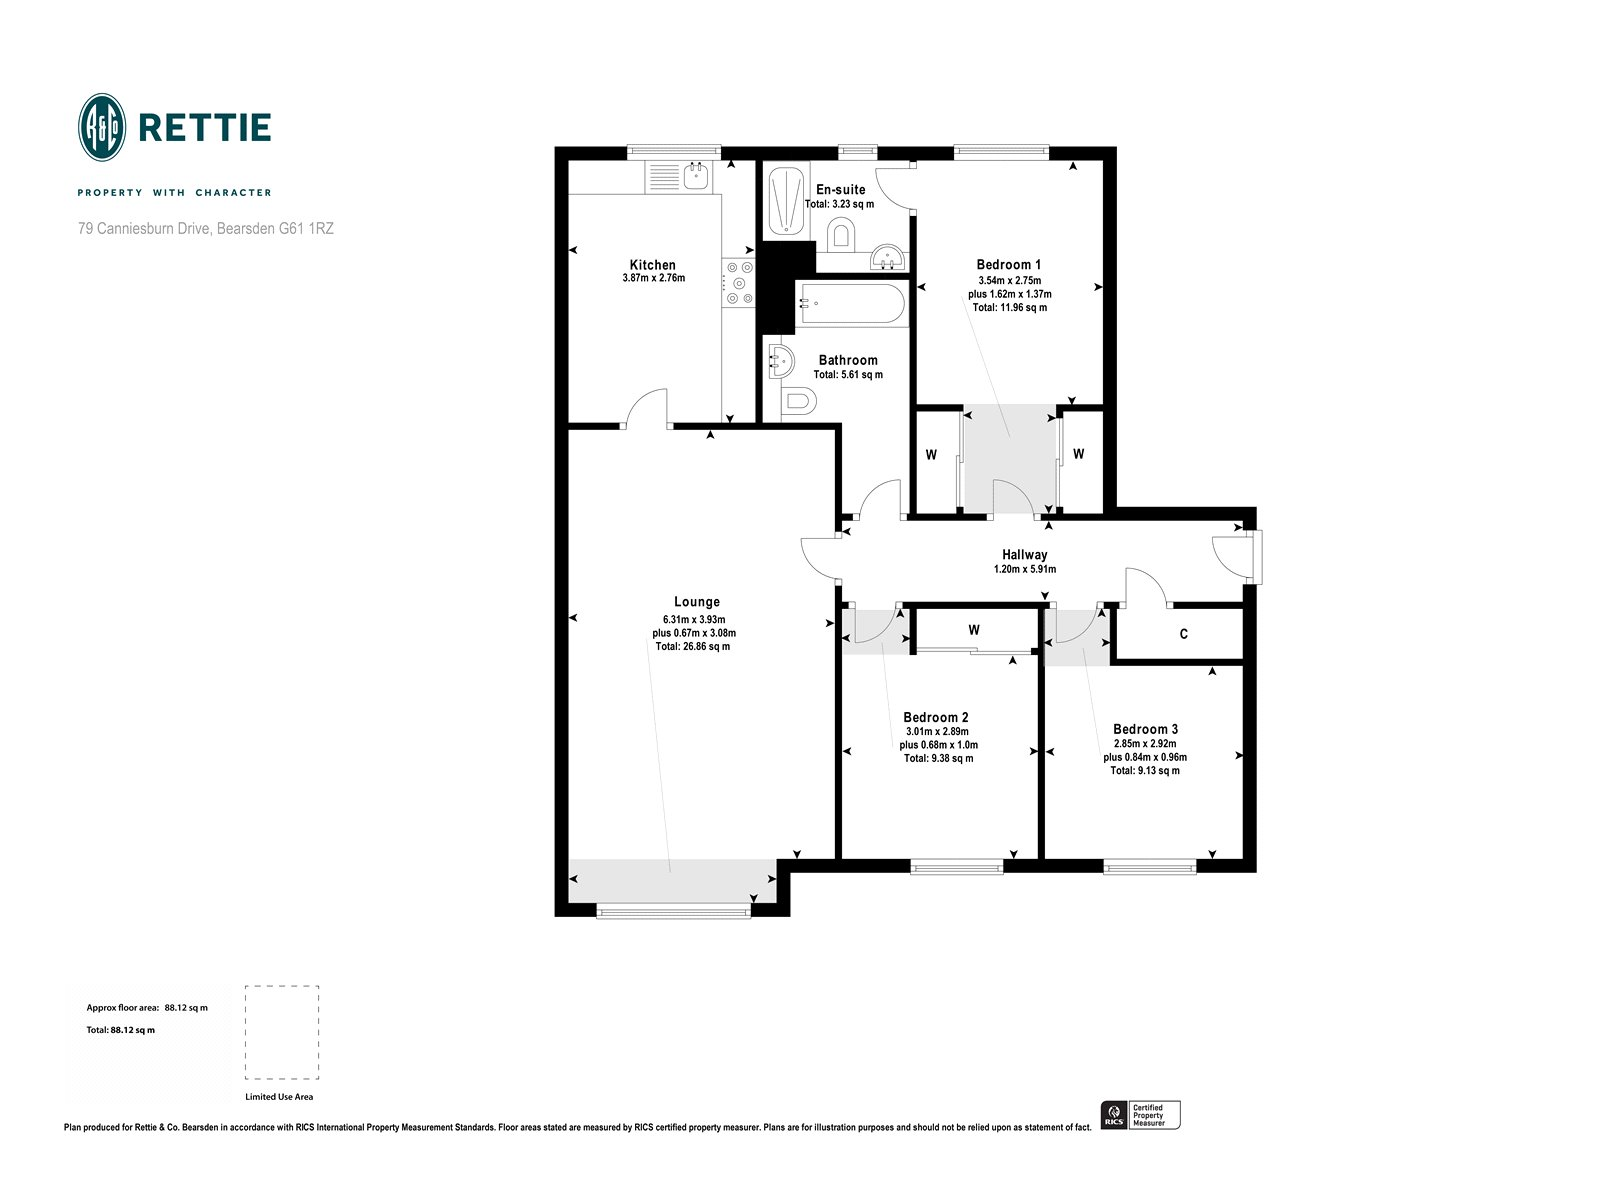 Floorplans for Canniesburn Drive, Bearsden, Glasgow, G61